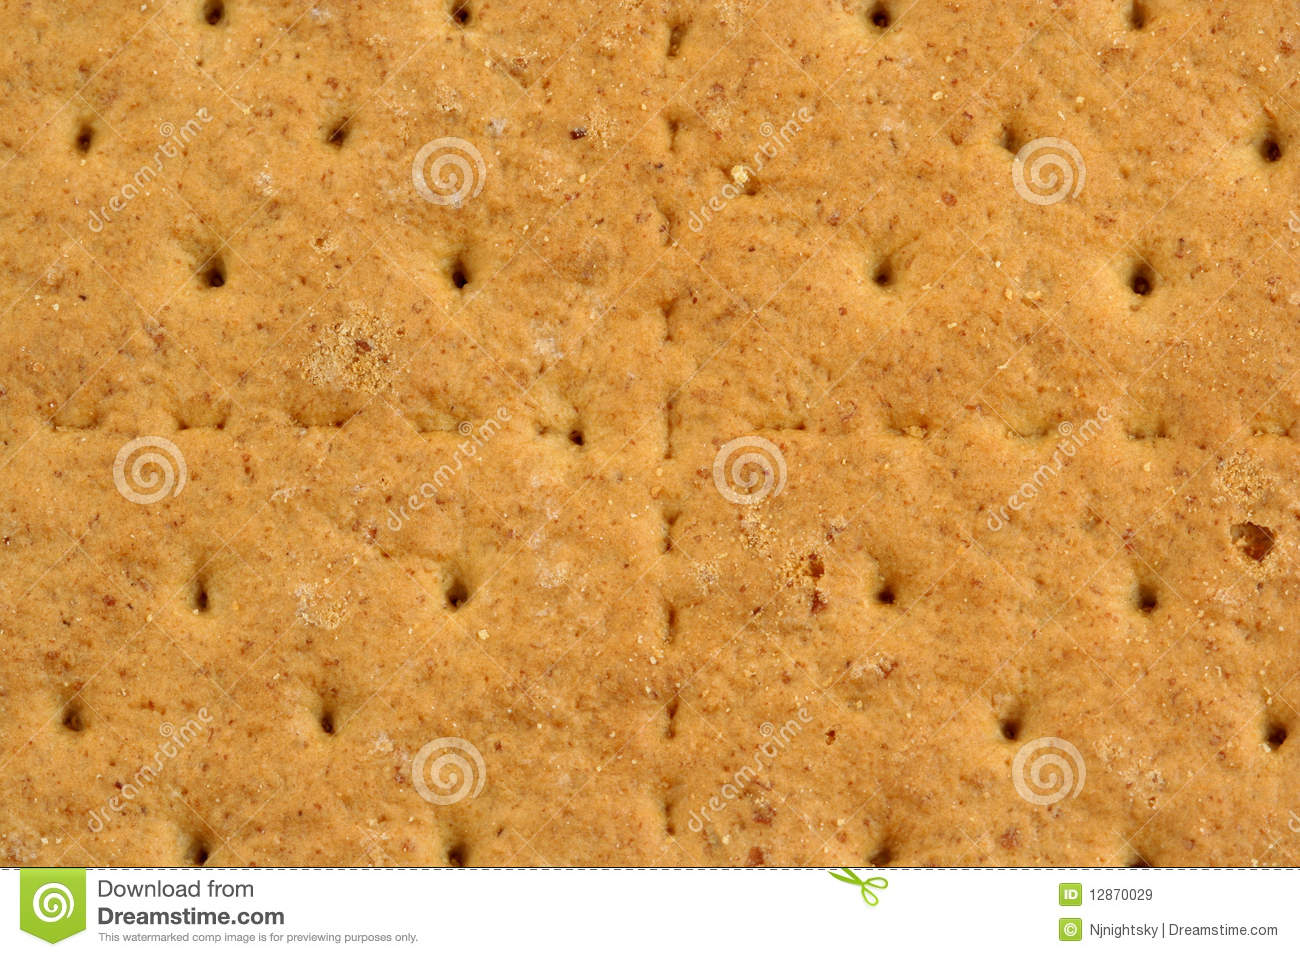 Graham Cracker Background Royalty Free Stock Images - Image: 12870029